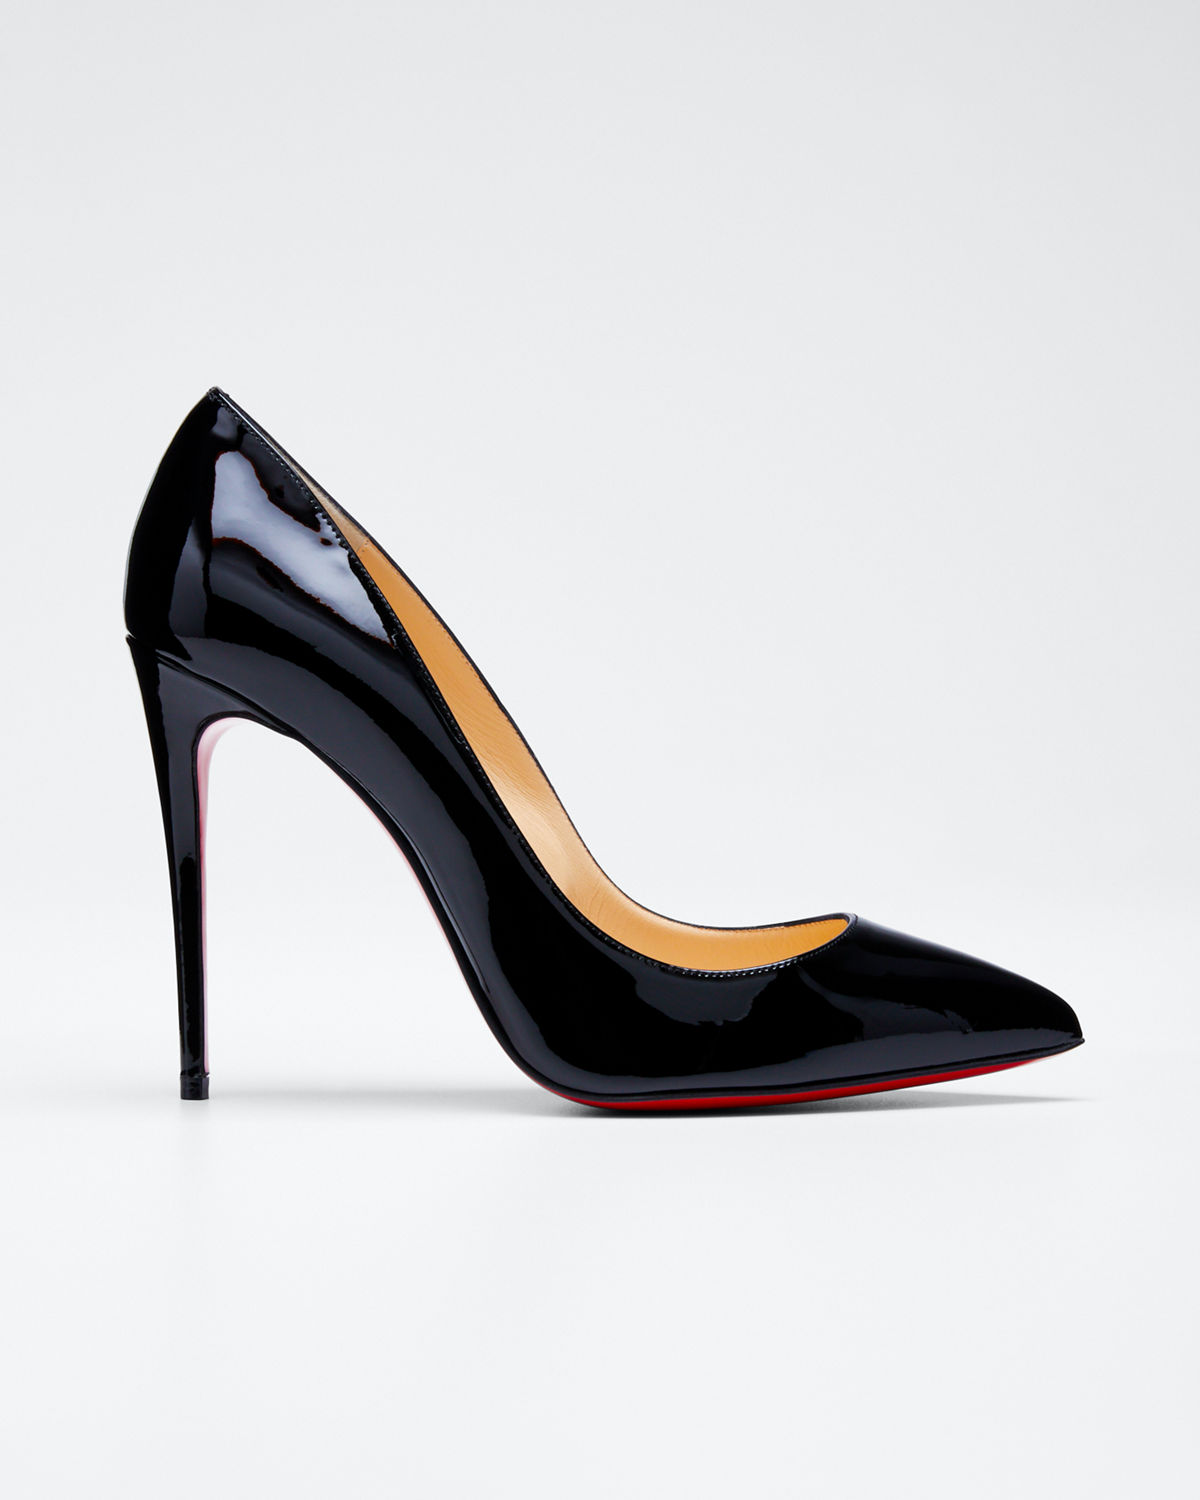 reputable site 51401 420e4 Pigalle Follies Patent Pointed-Toe Red Sole Pump